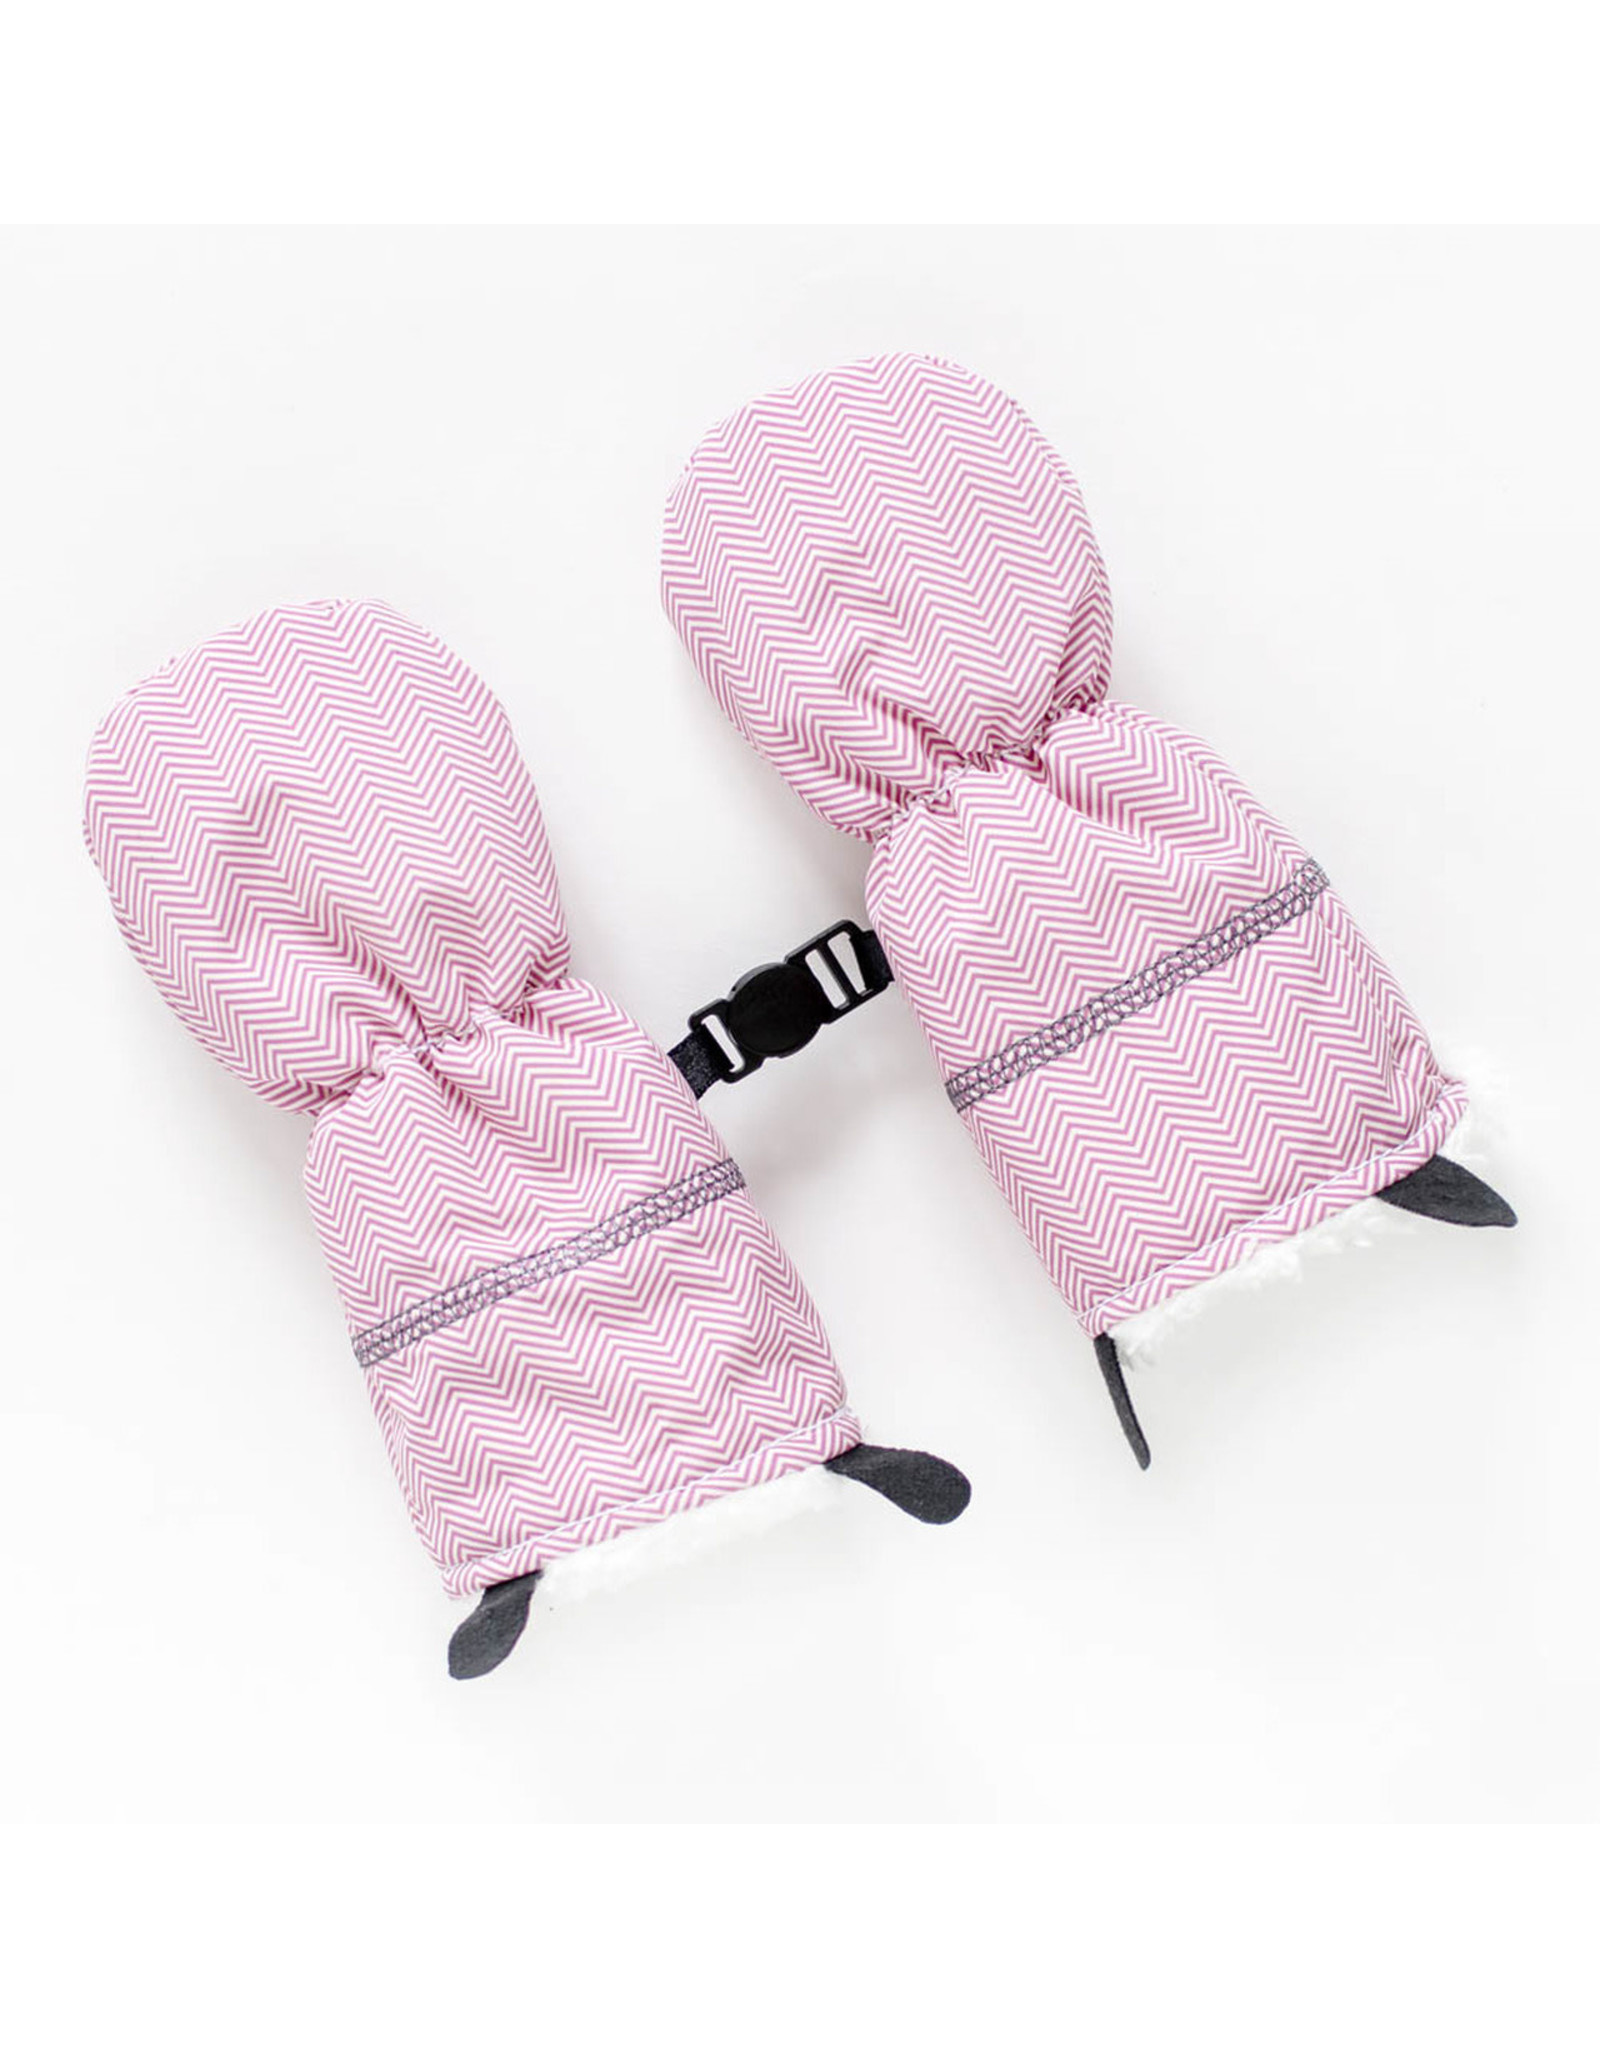 Juddlies Juddlies Winter Mitts Herringbone Pink 0-6M